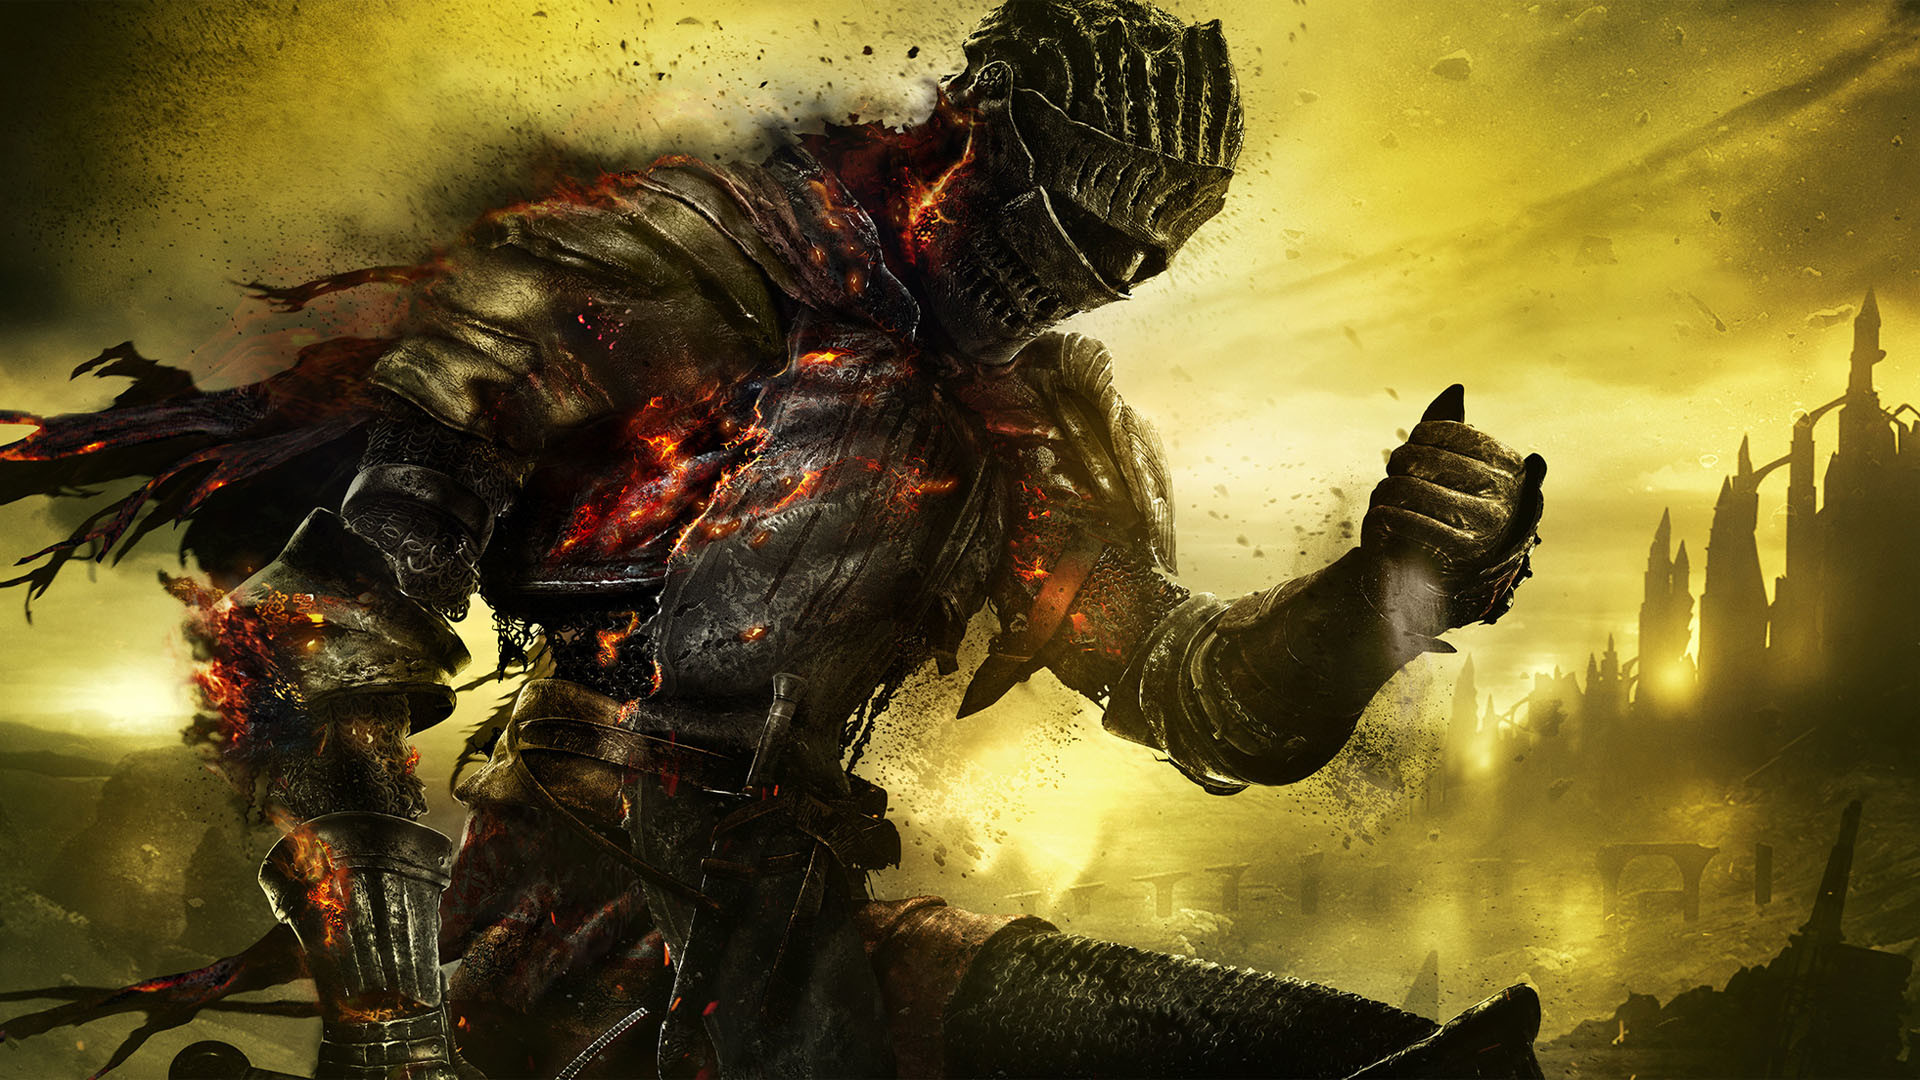 1920x1080 Dark Souls 3 HD Wallpaper